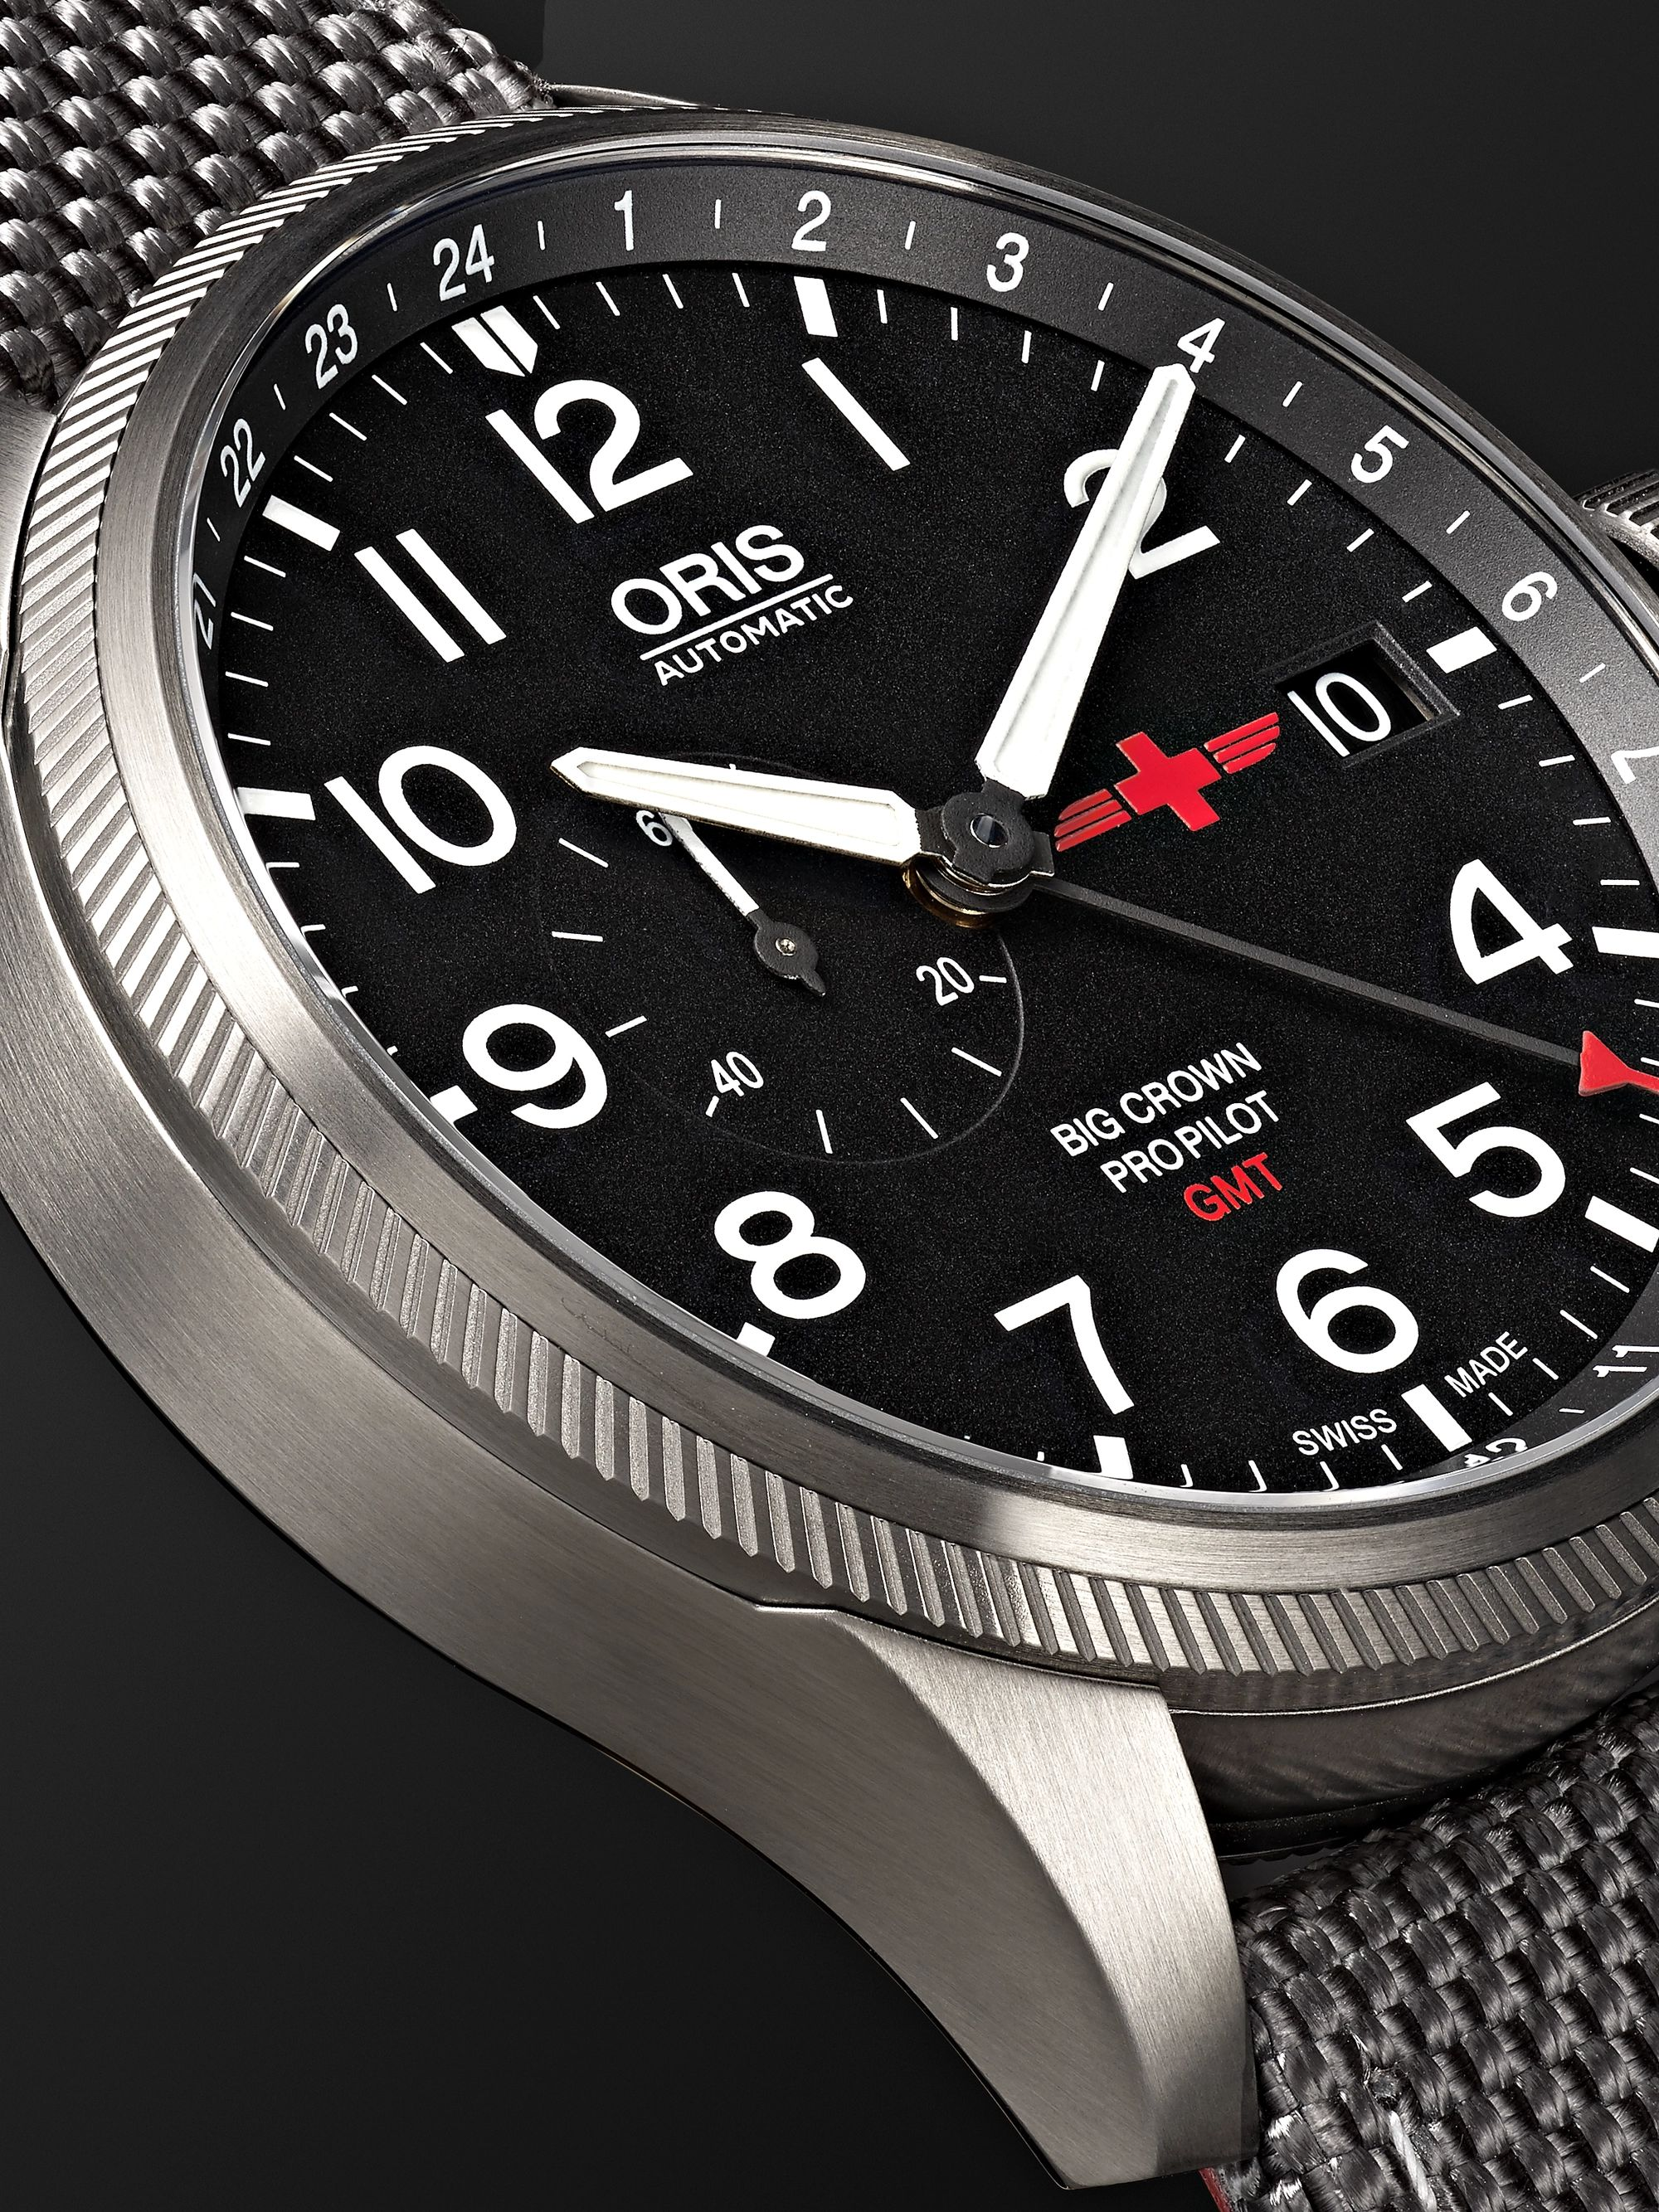 Oris GMT Rega Limited Edition Automatic 45mm Stainless Steel and Canvas Watch, Ref. No. 01 748 7710 4284